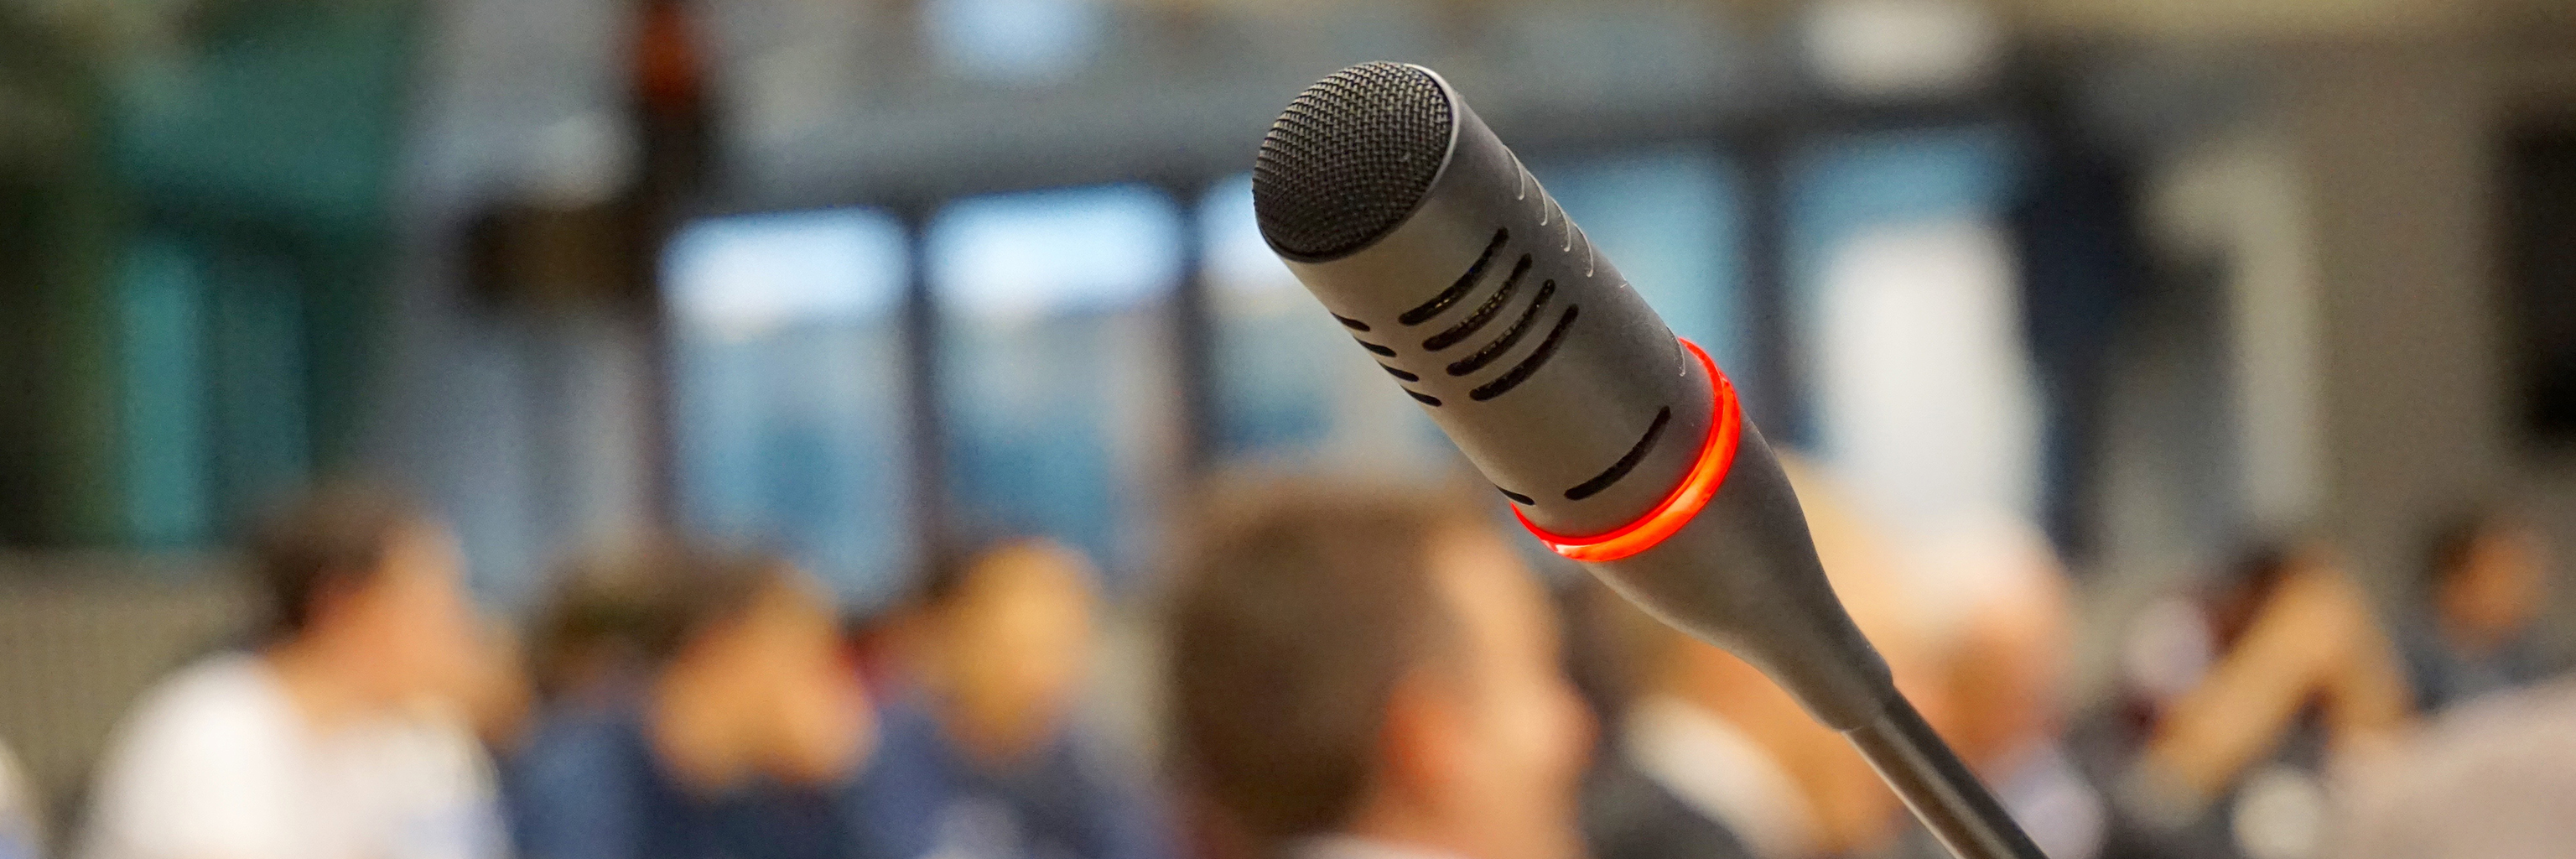 Podium microphone at an event